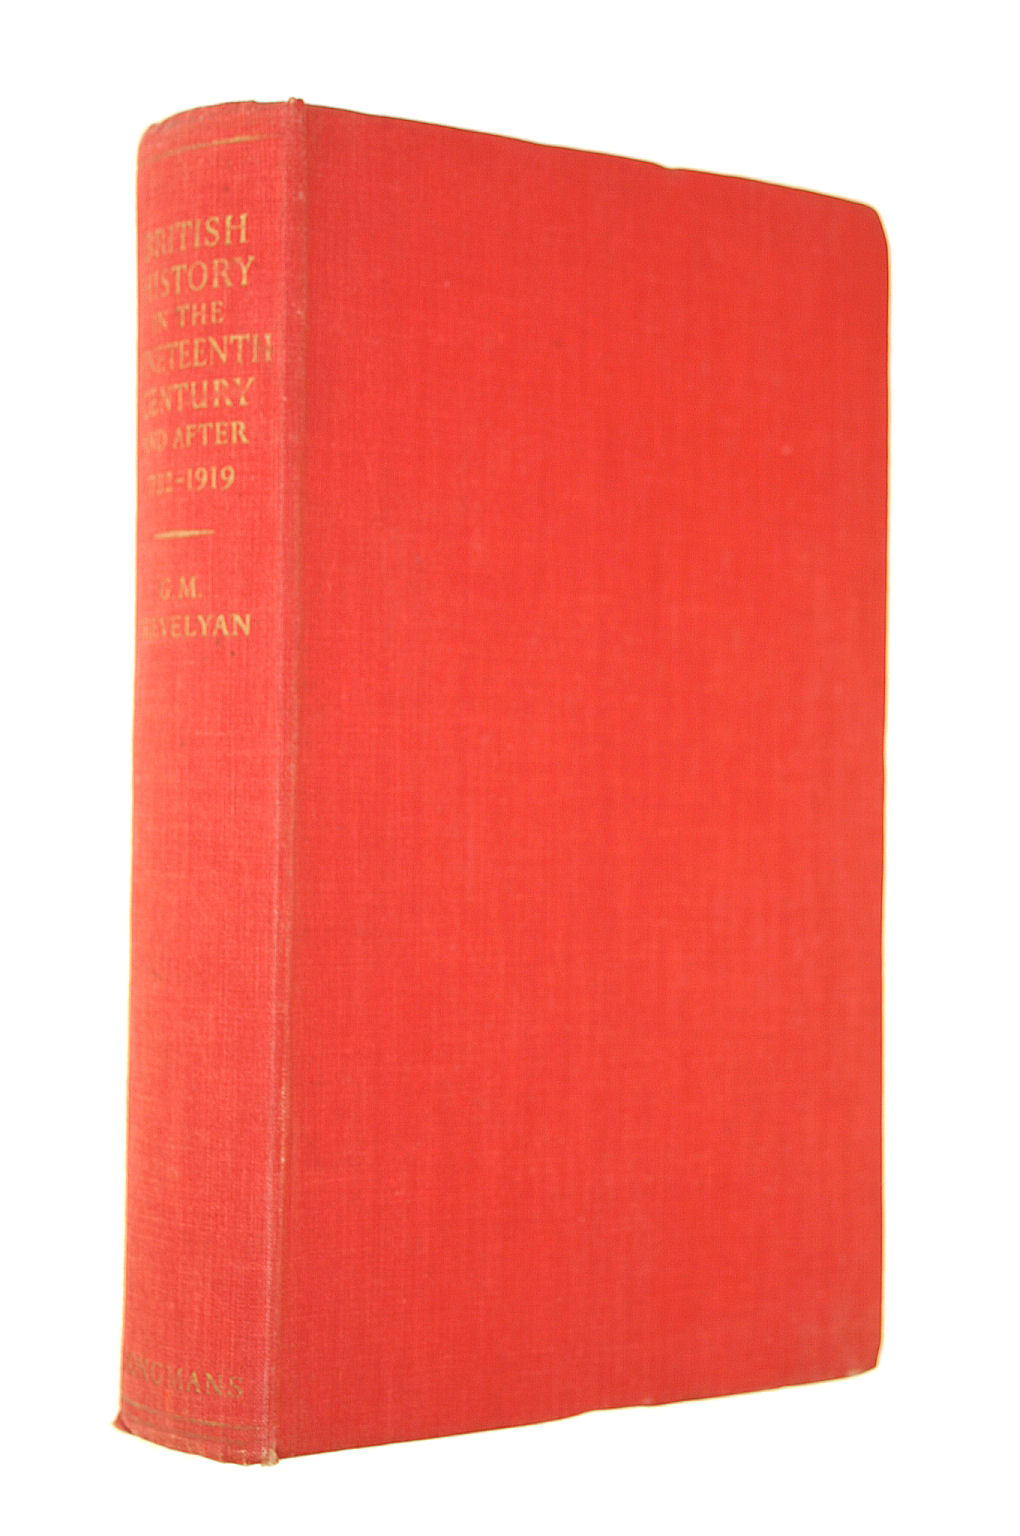 Image for British History In The Nineteenth Century And After (1782-1919)